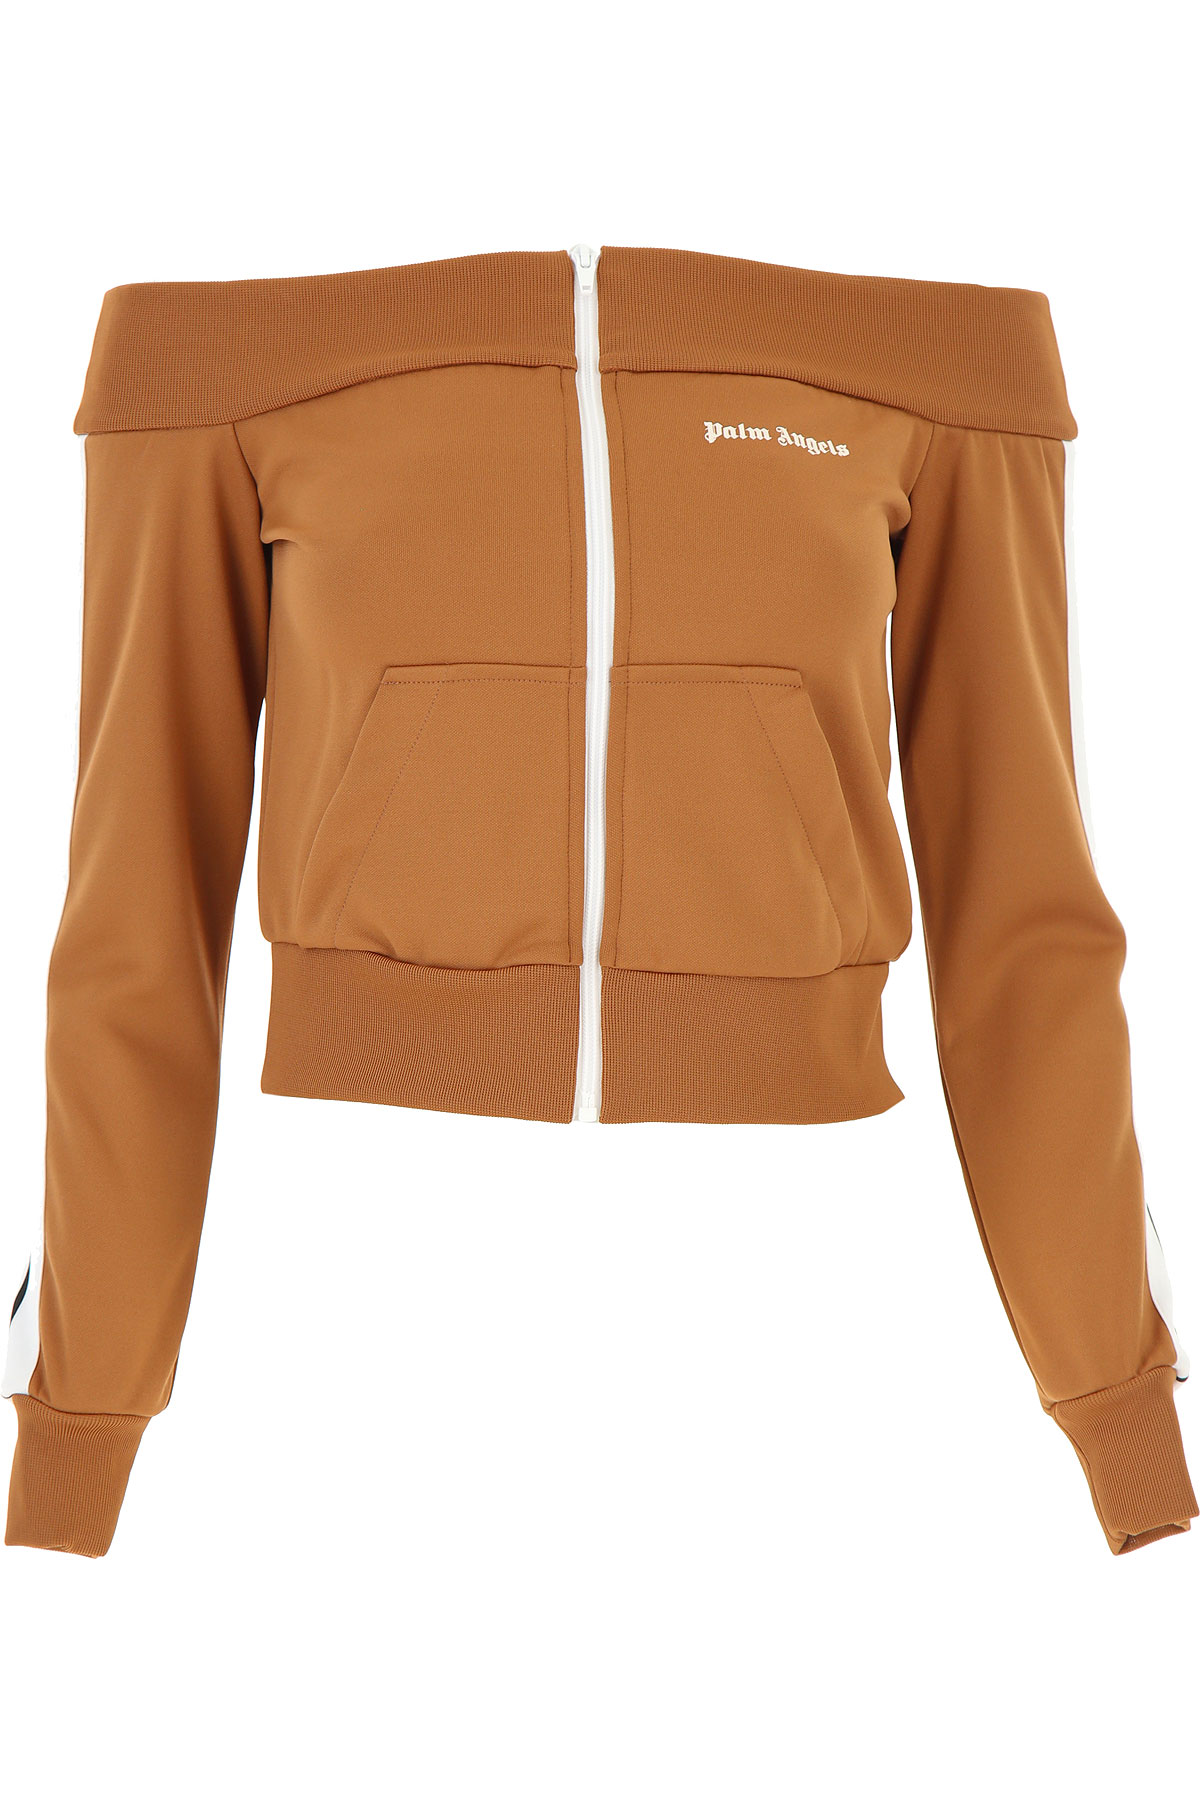 Palm Angels Sweatshirt for Women On Sale, Brown, polyester, 2019, 2 4